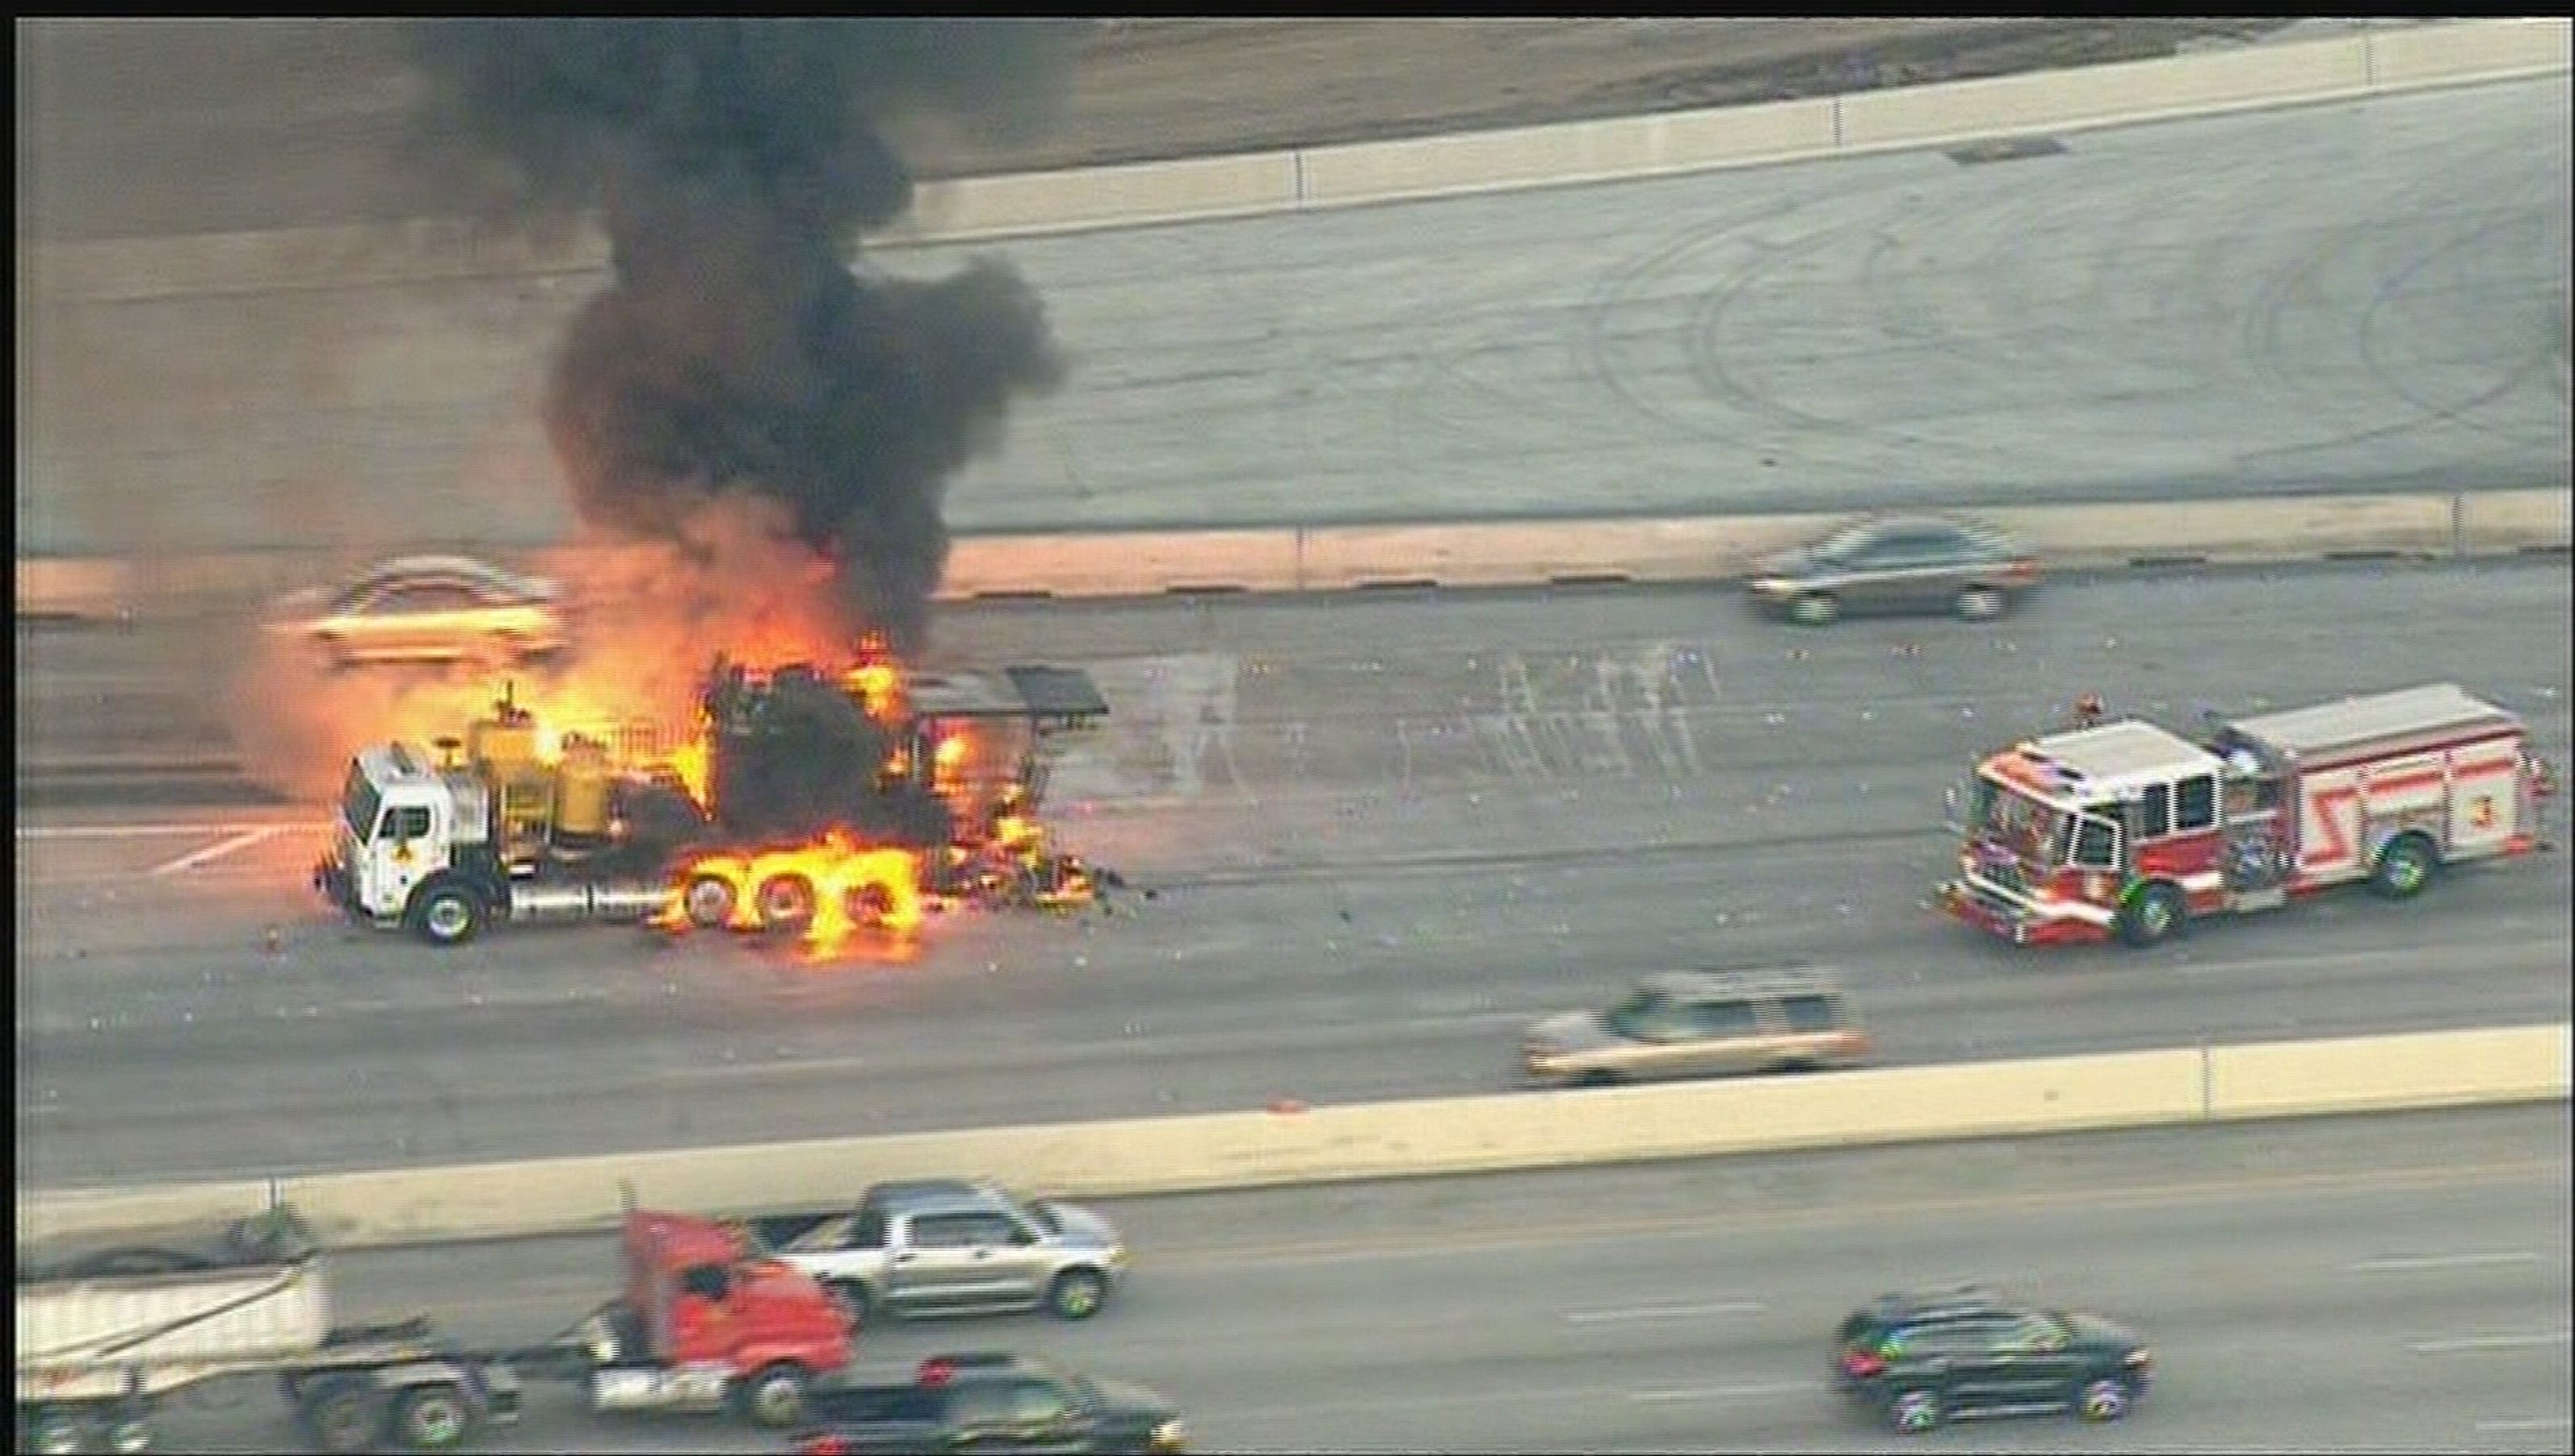 Road striping truck catches fire, slows traffic on West Loop